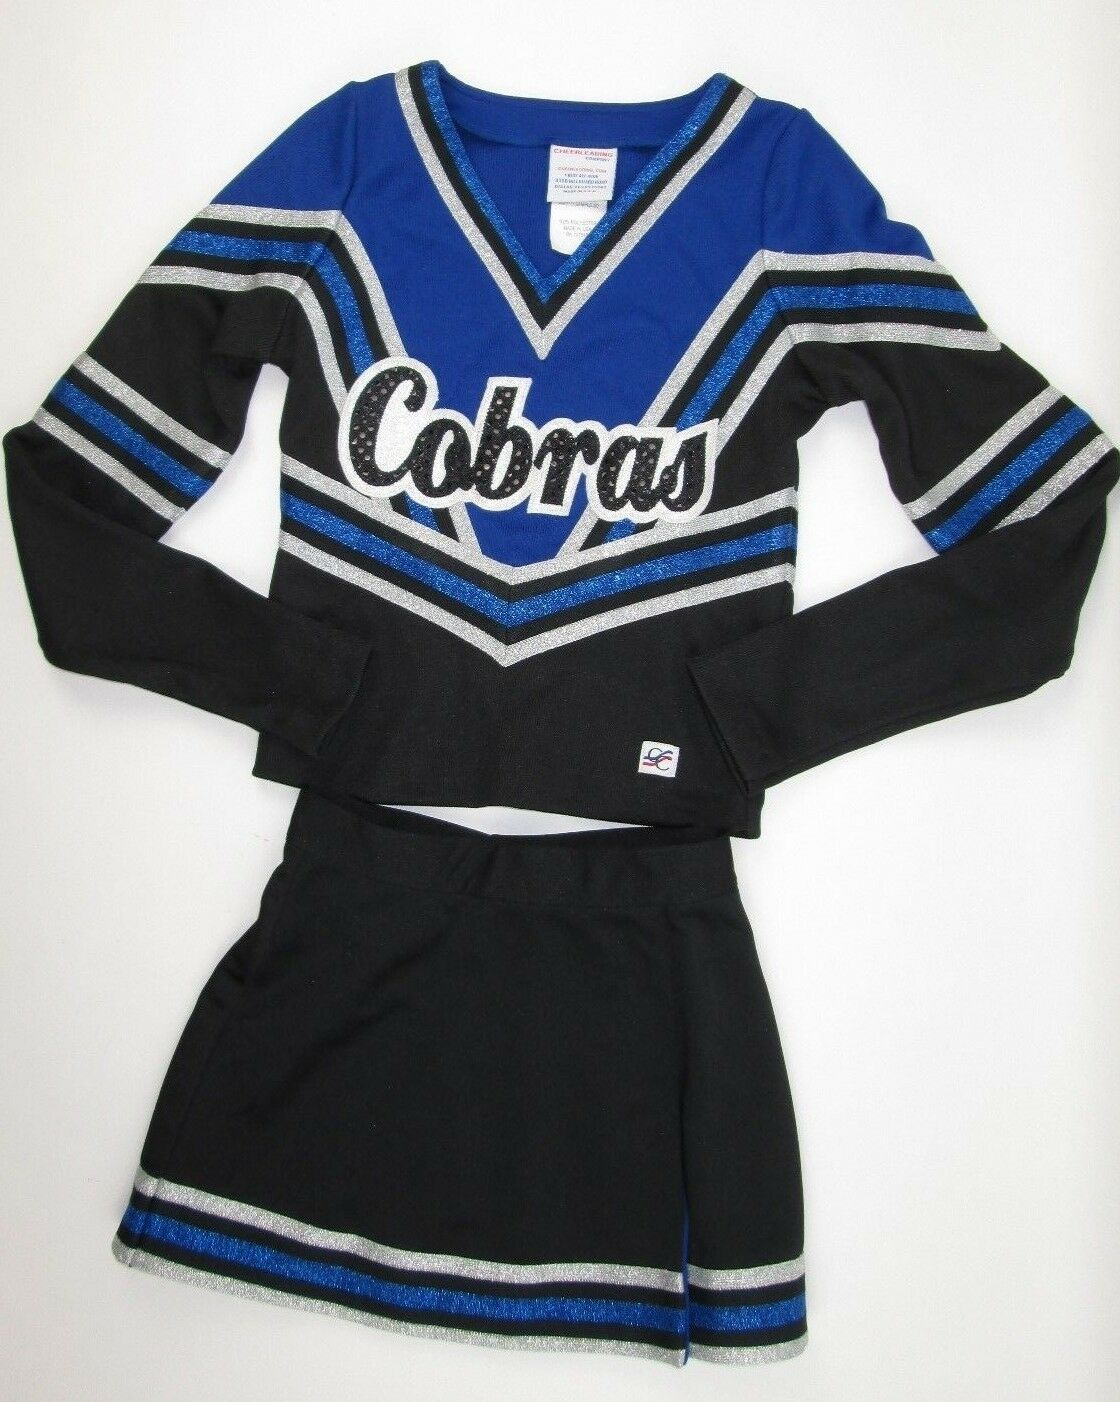 NEW COBRAS Cheerleader Uniform Outfit Costume   ld M 30  Top 22 Skirt Sparkle  factory outlets